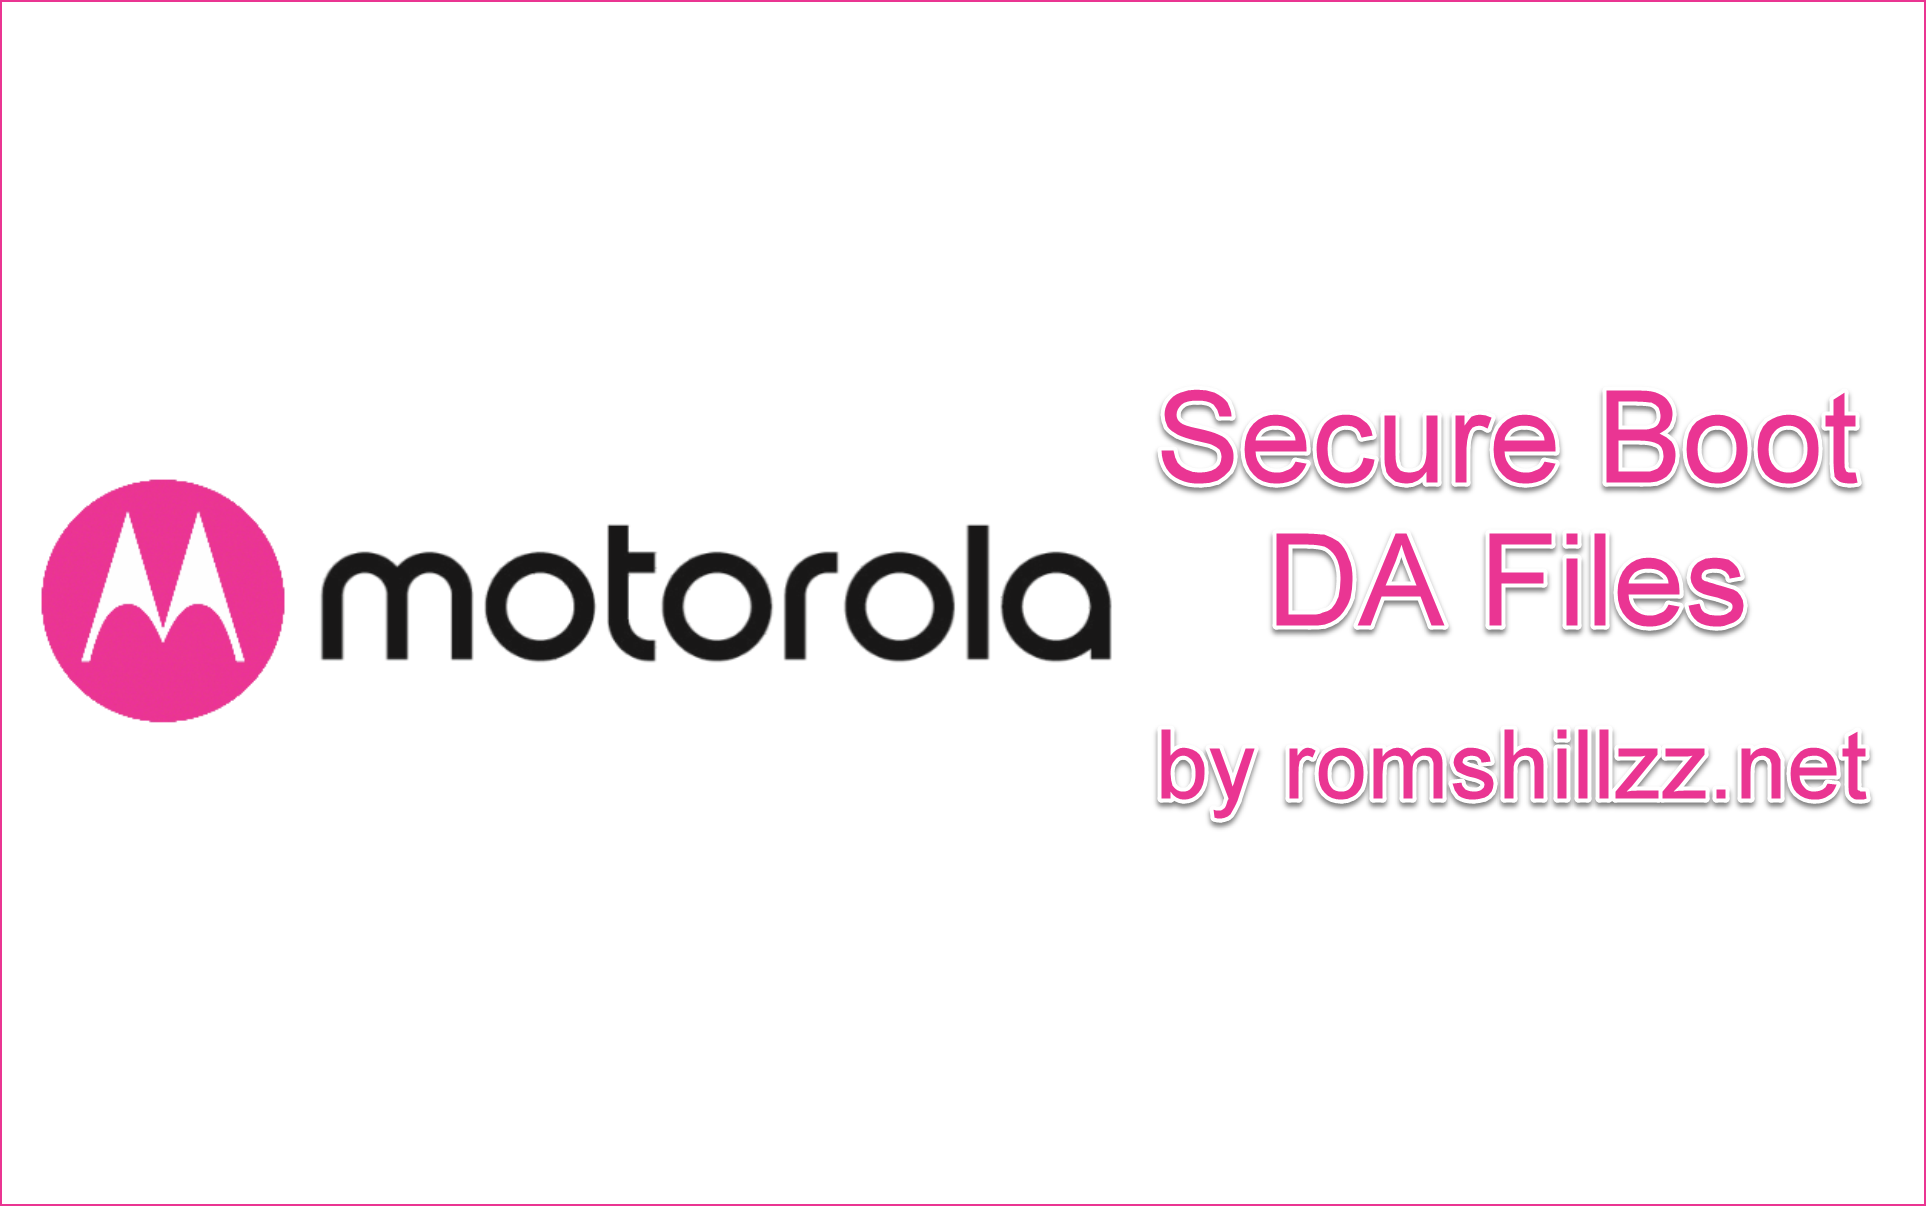 motorola-secure-boot.png